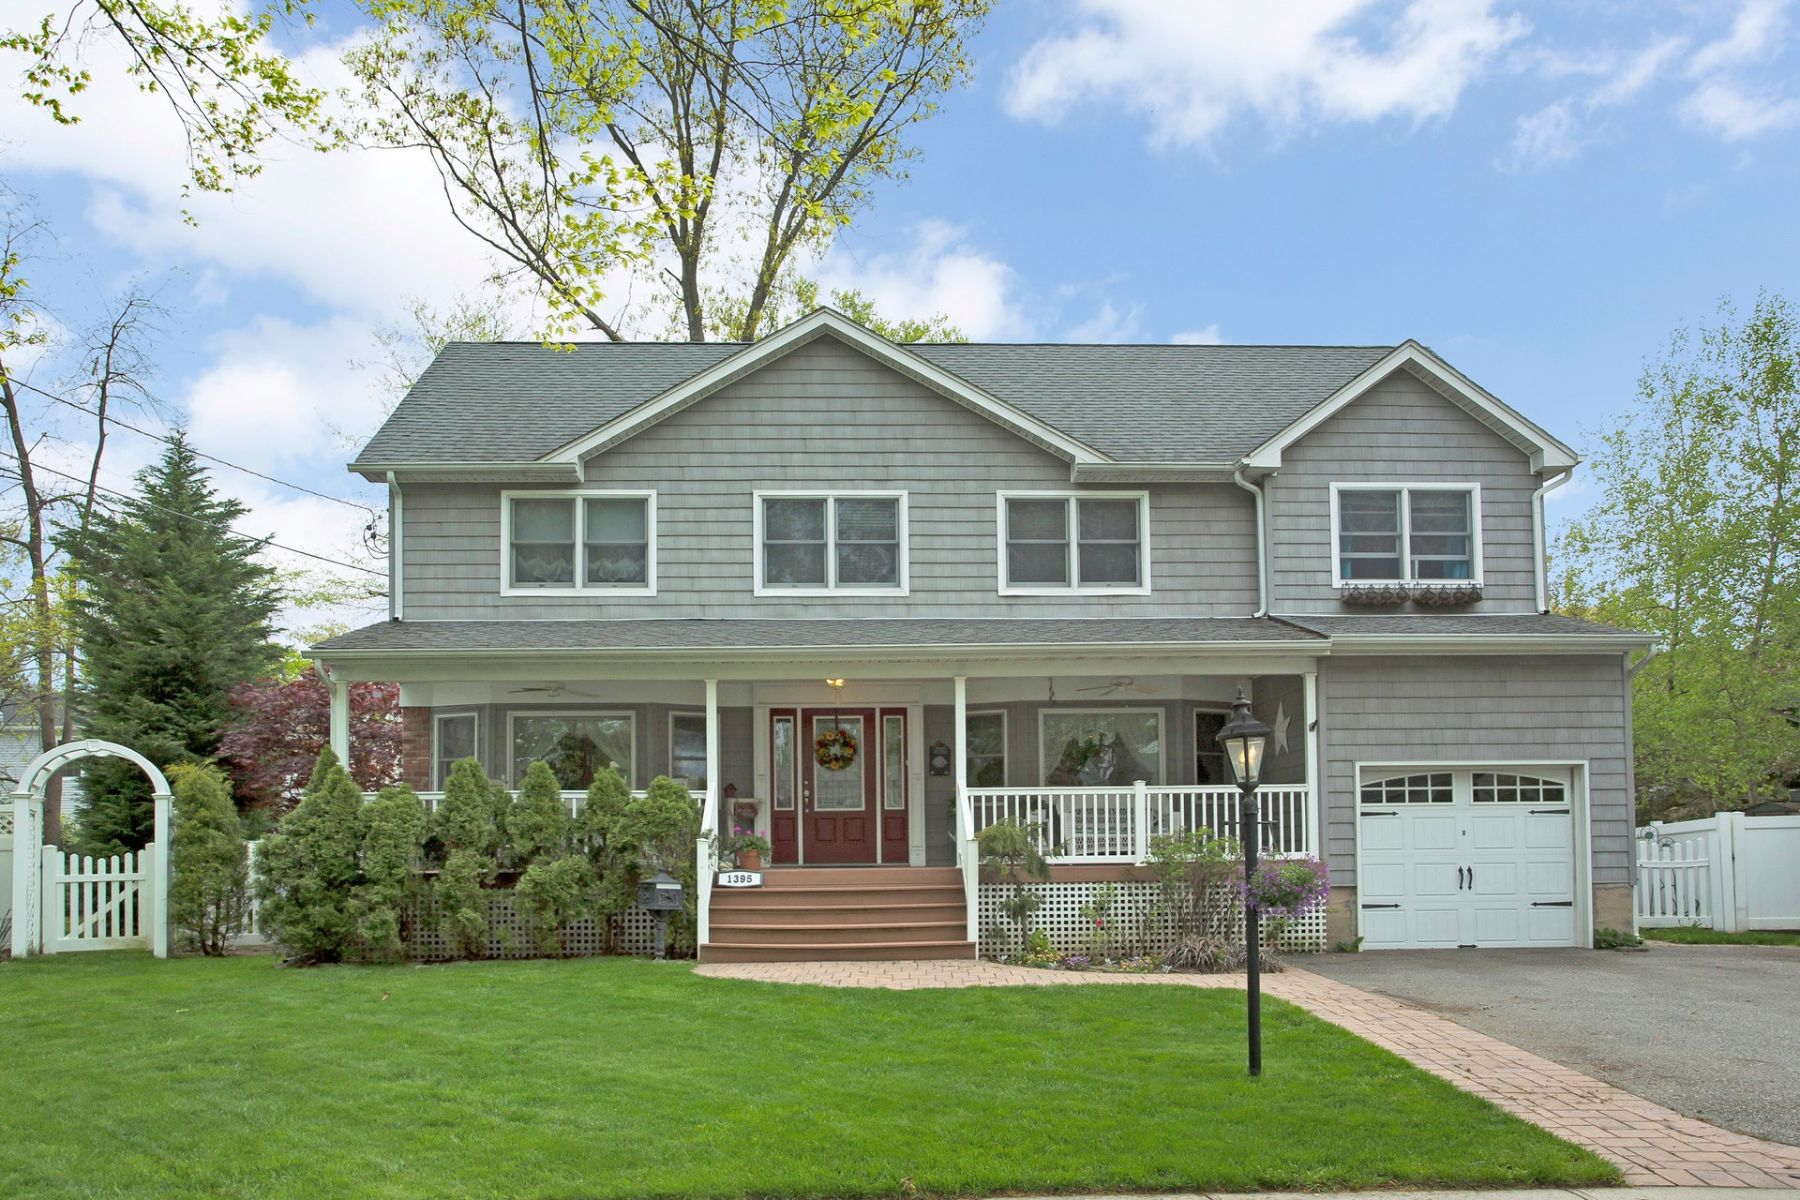 Single Family Homes for Active at Wantagh 1395 Poulson St Wantagh, New York 11793 United States